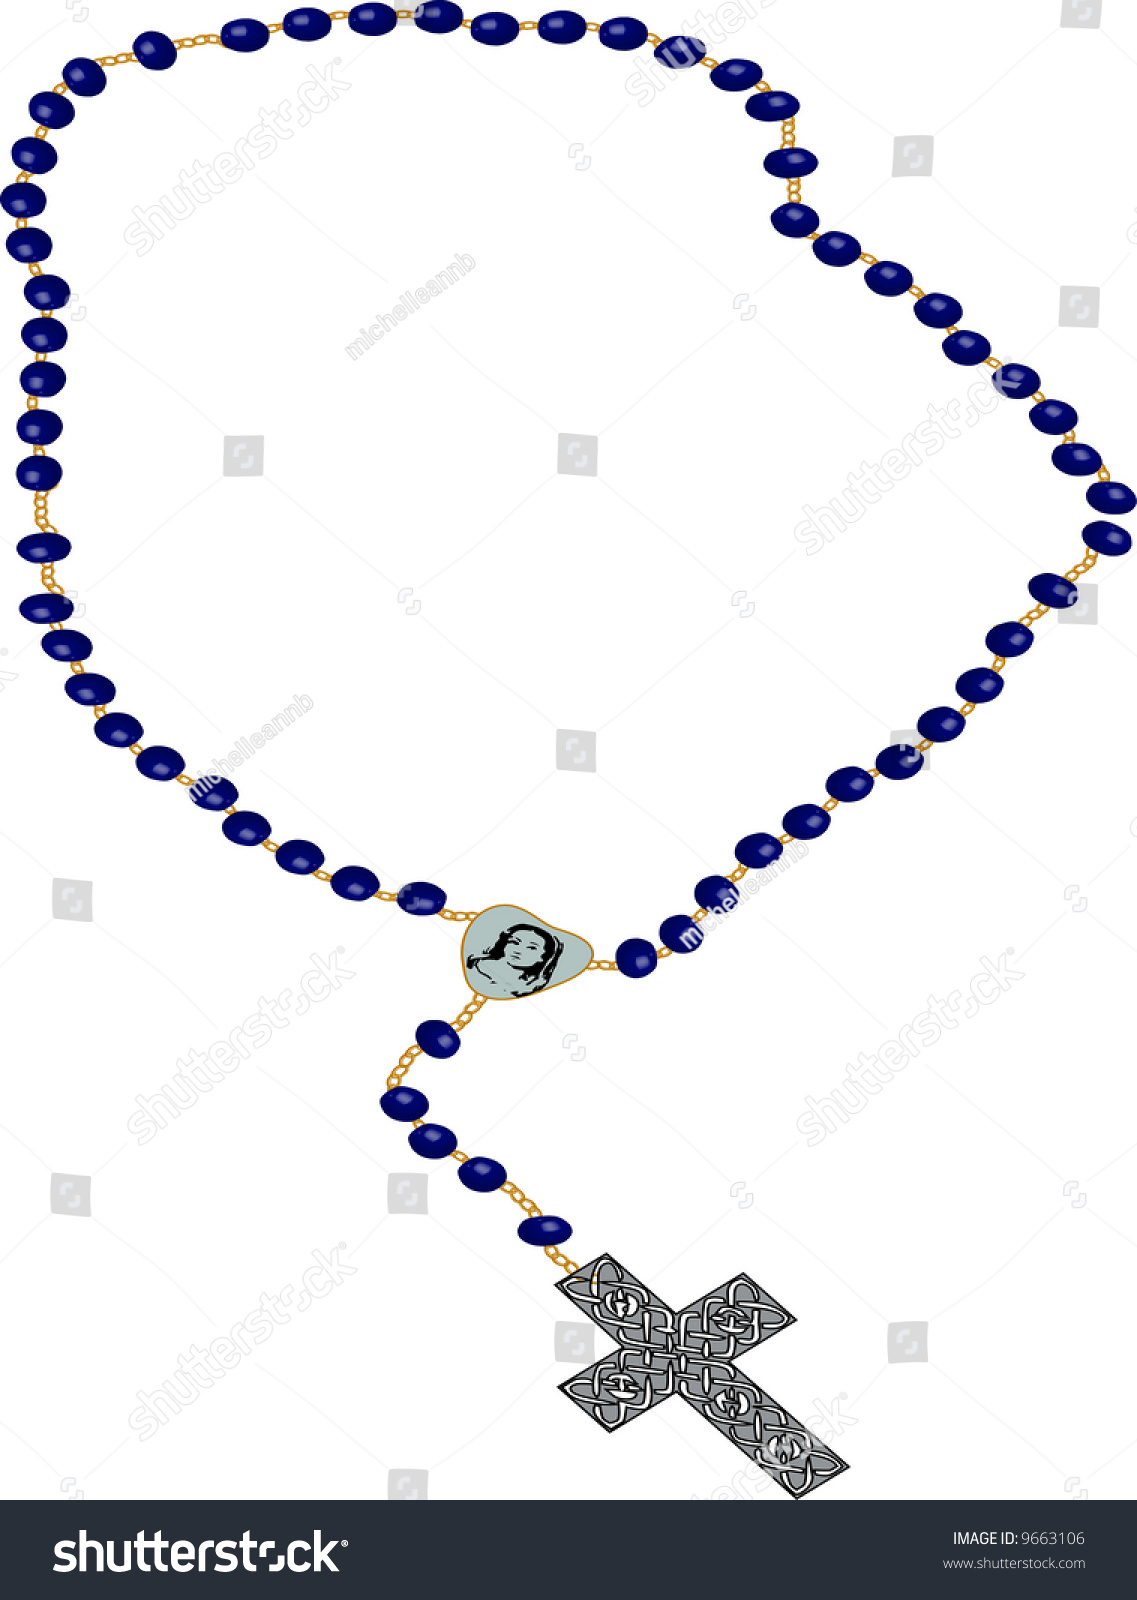 rosary clipart illustration on white background stock illustration rh shutterstock com rosary border clipart holy rosary clipart